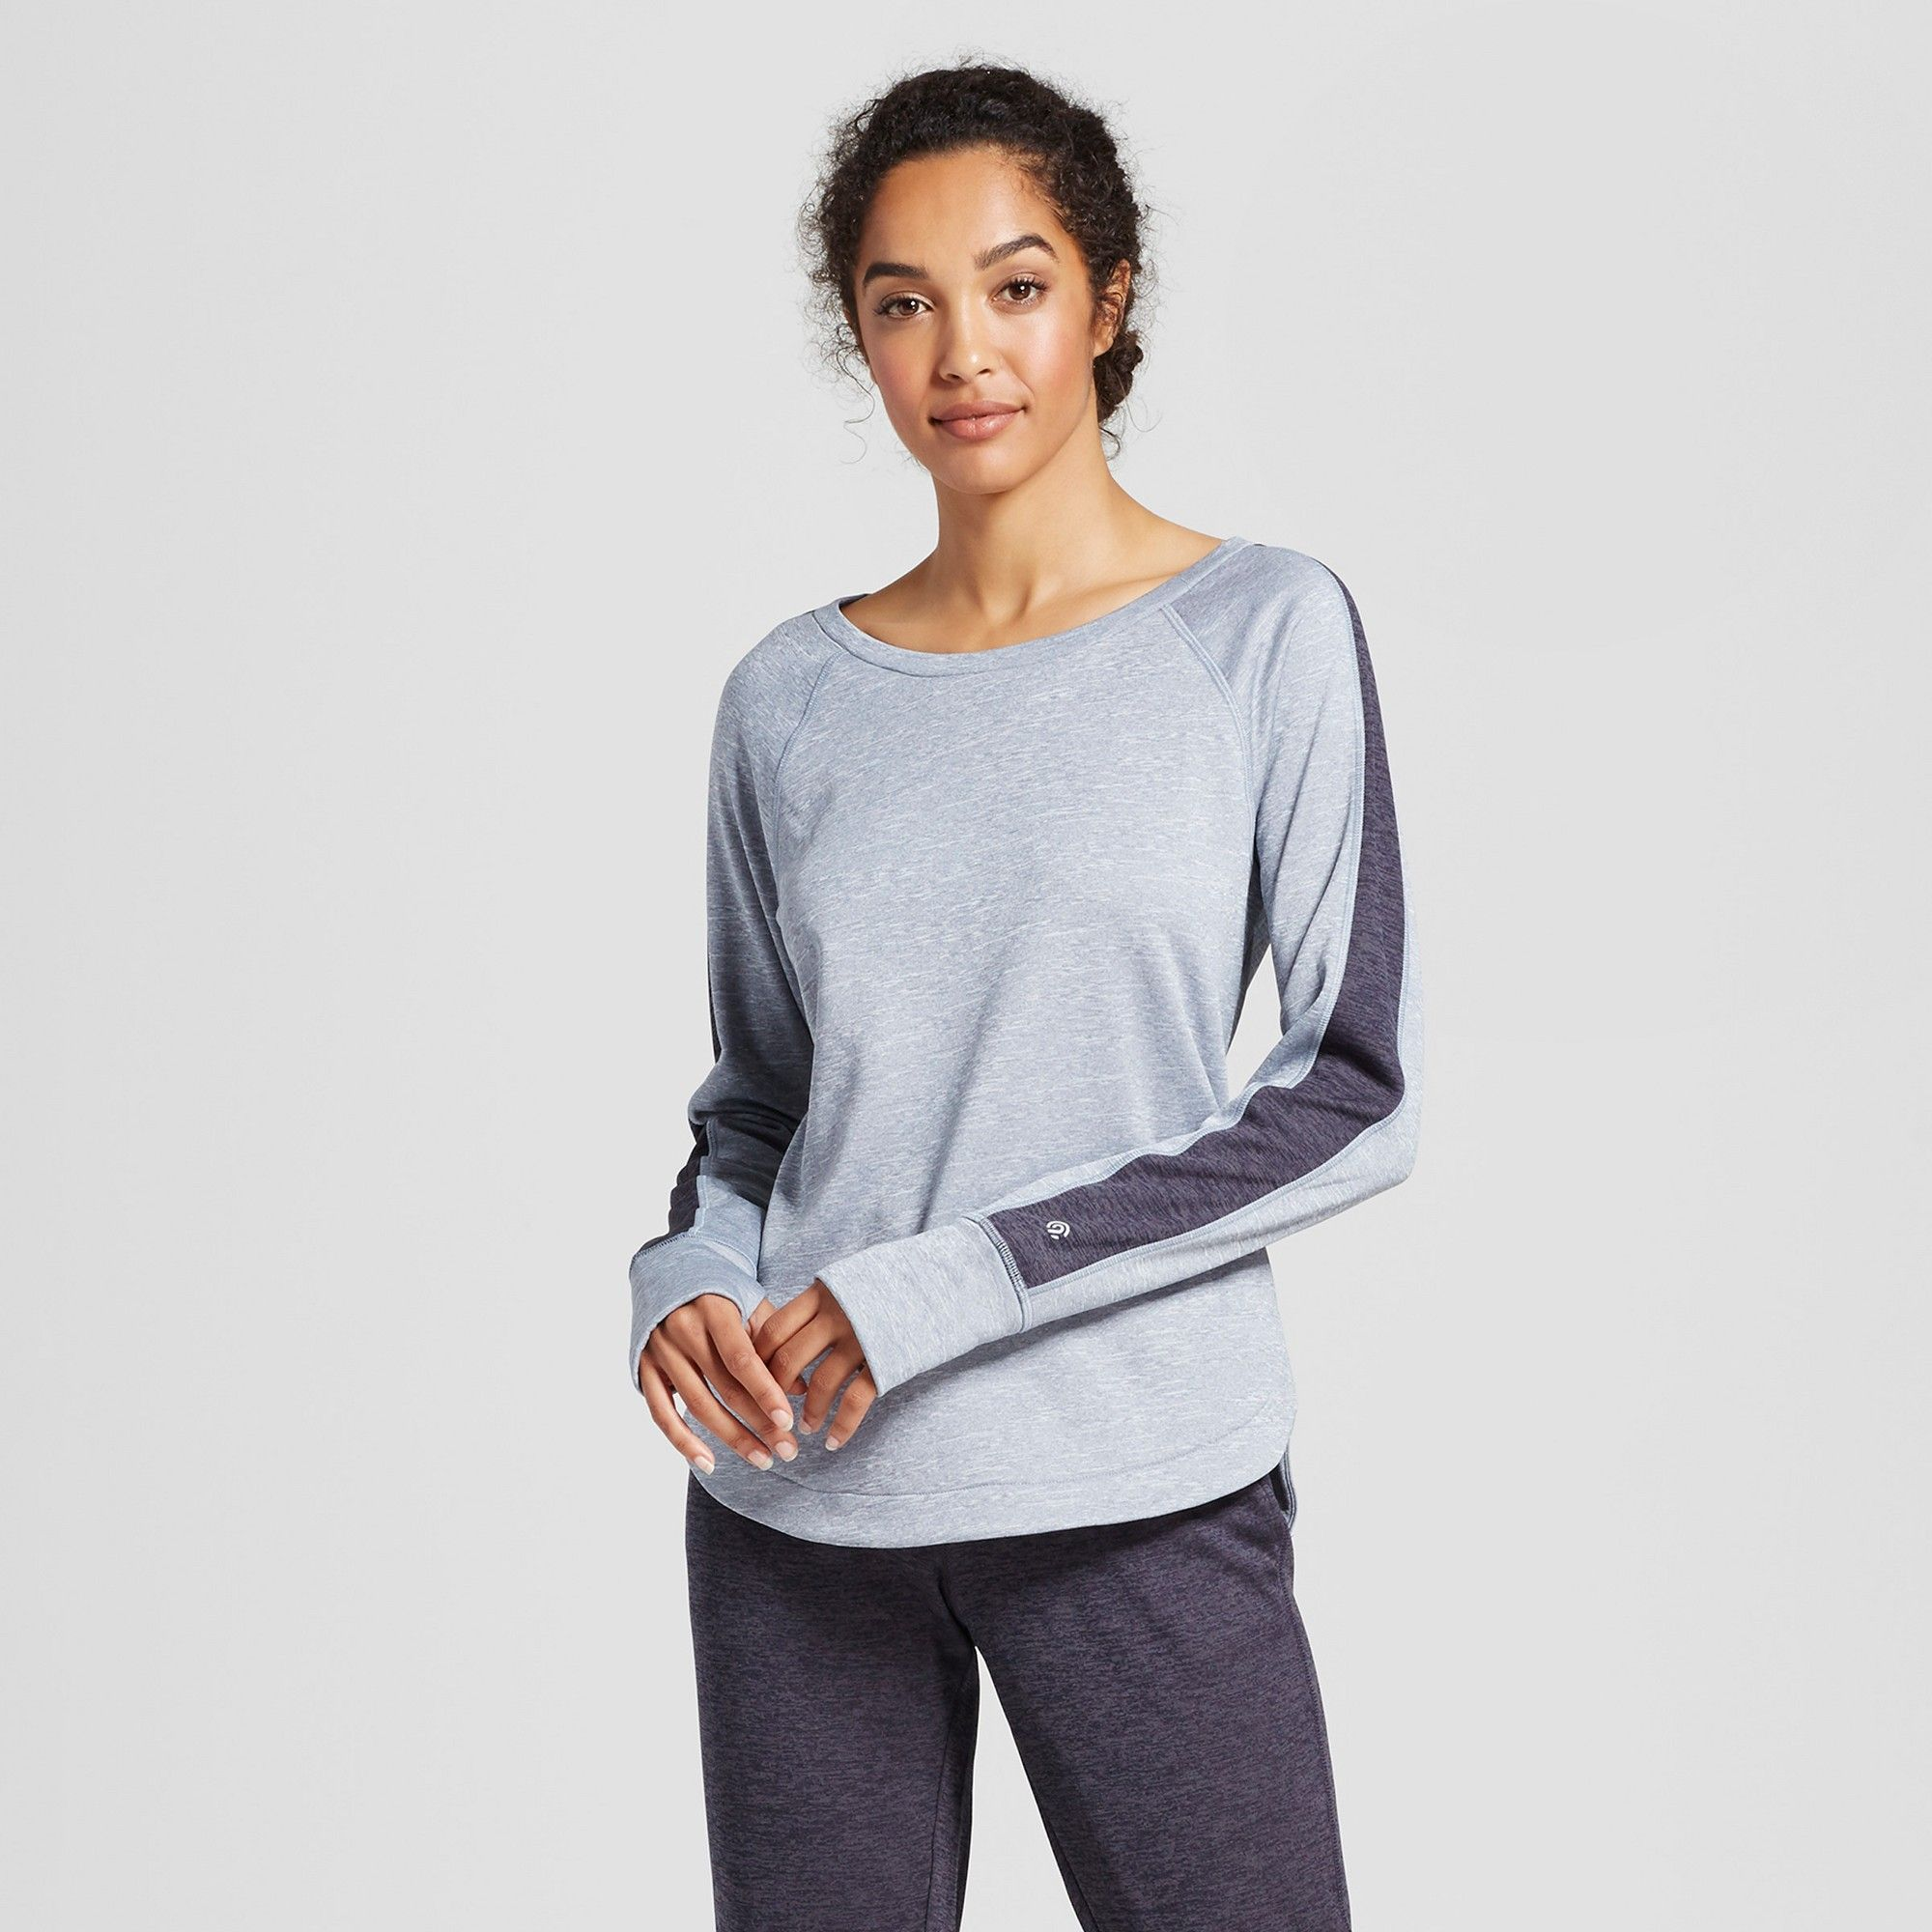 Women's Colorblock Tech Fleece Crew C9 Champion Light